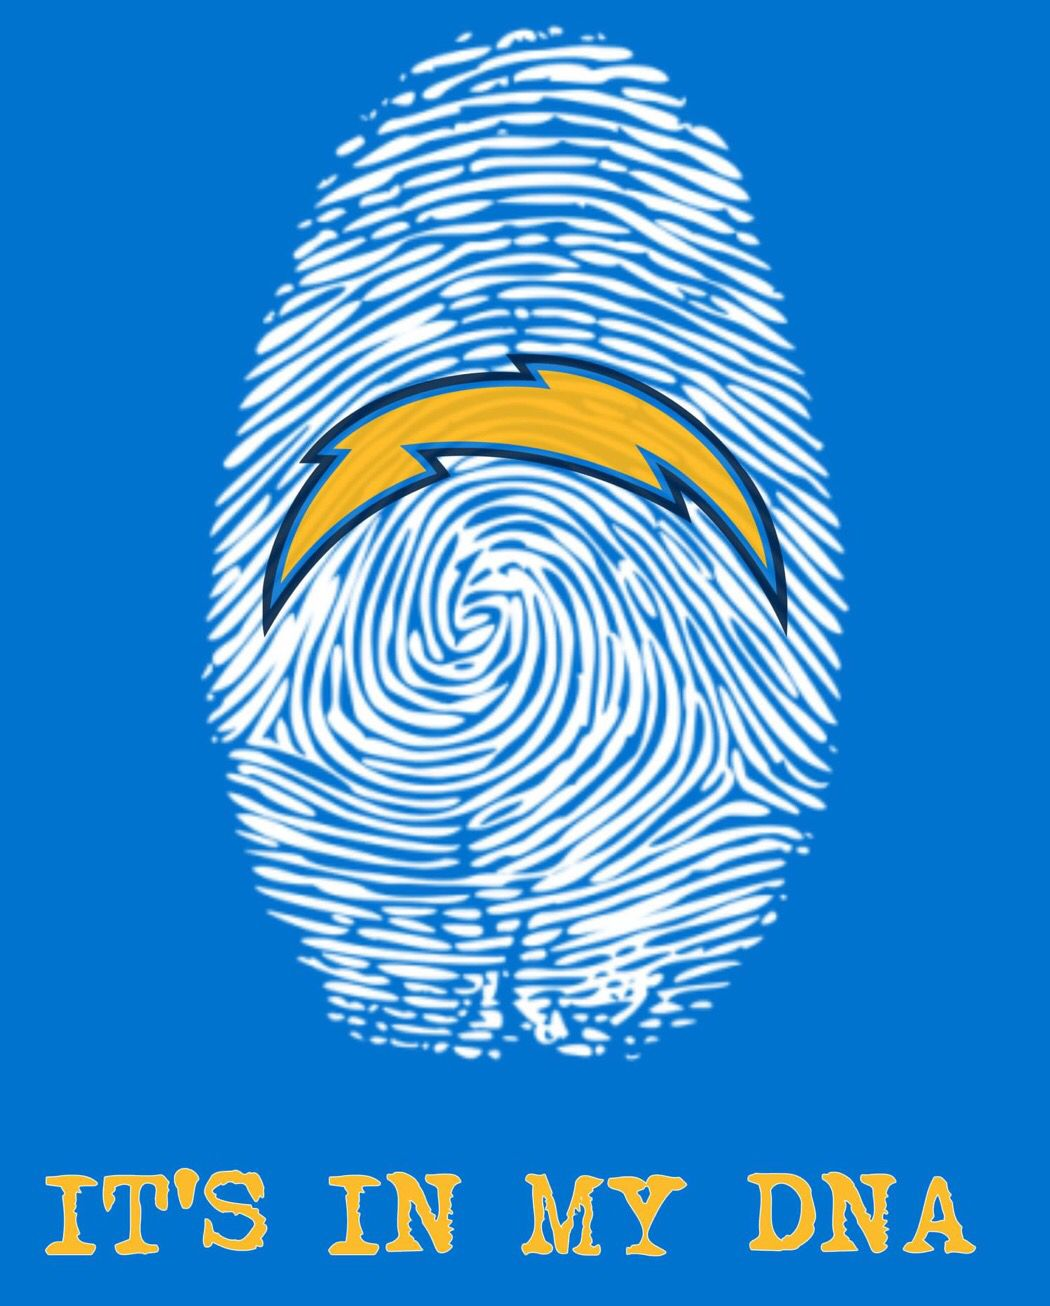 Pin By Sha On Los Angeles Chargers Los Angeles Chargers Chargers Nfl Chargers Football